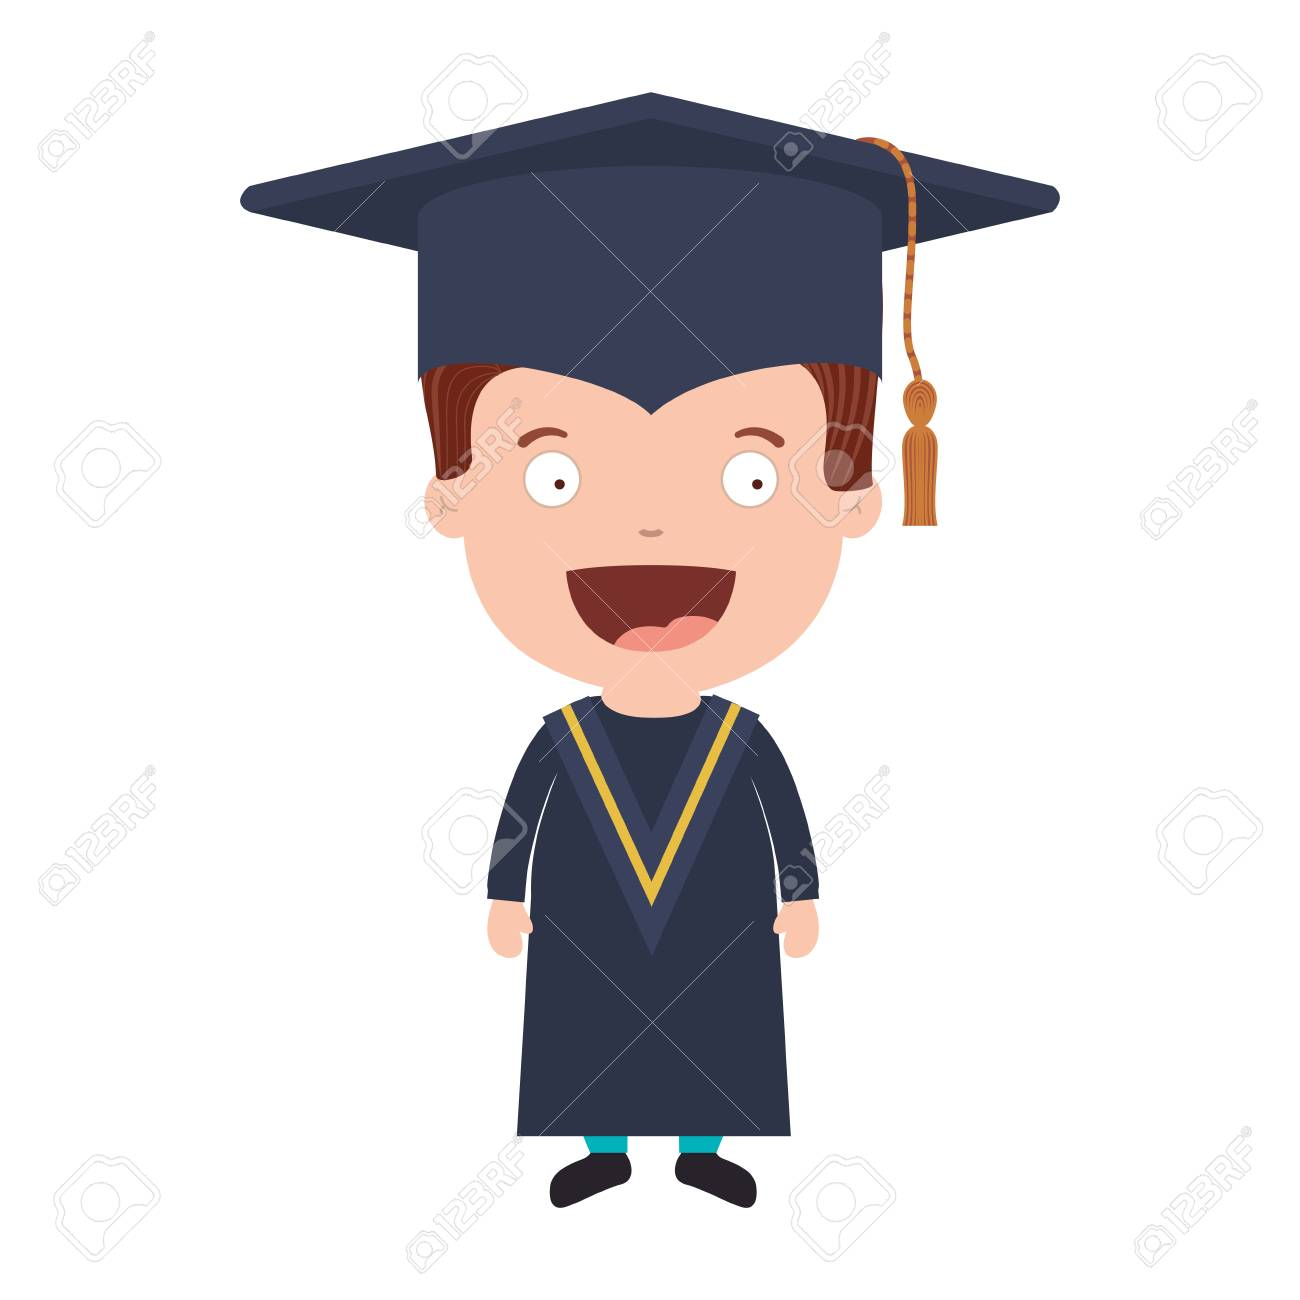 avatar boy with graduation outfit vector illustration royalty free